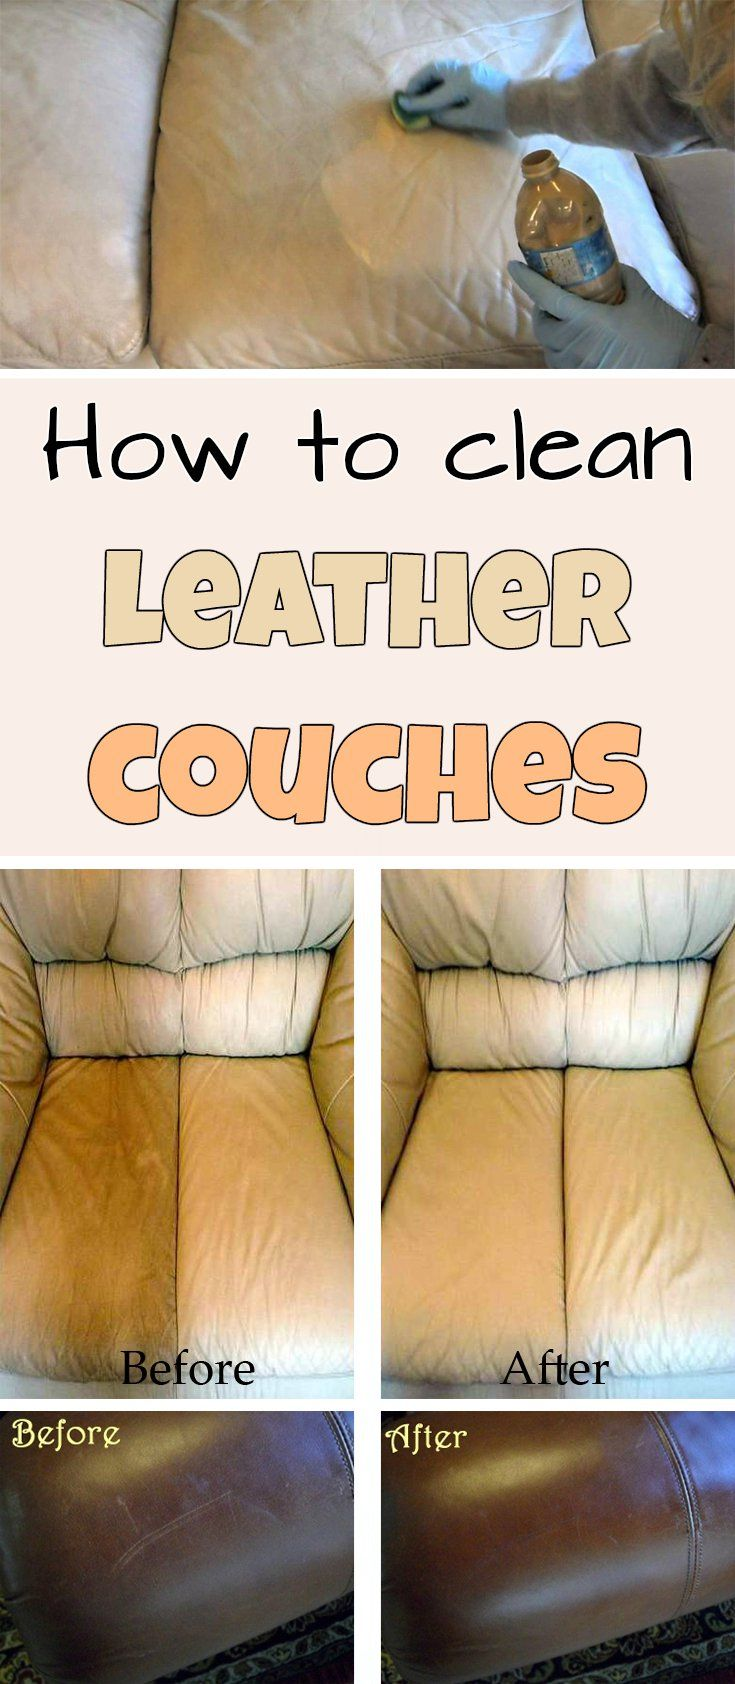 How to clean leather couches myCleaningSolutionscom Clean